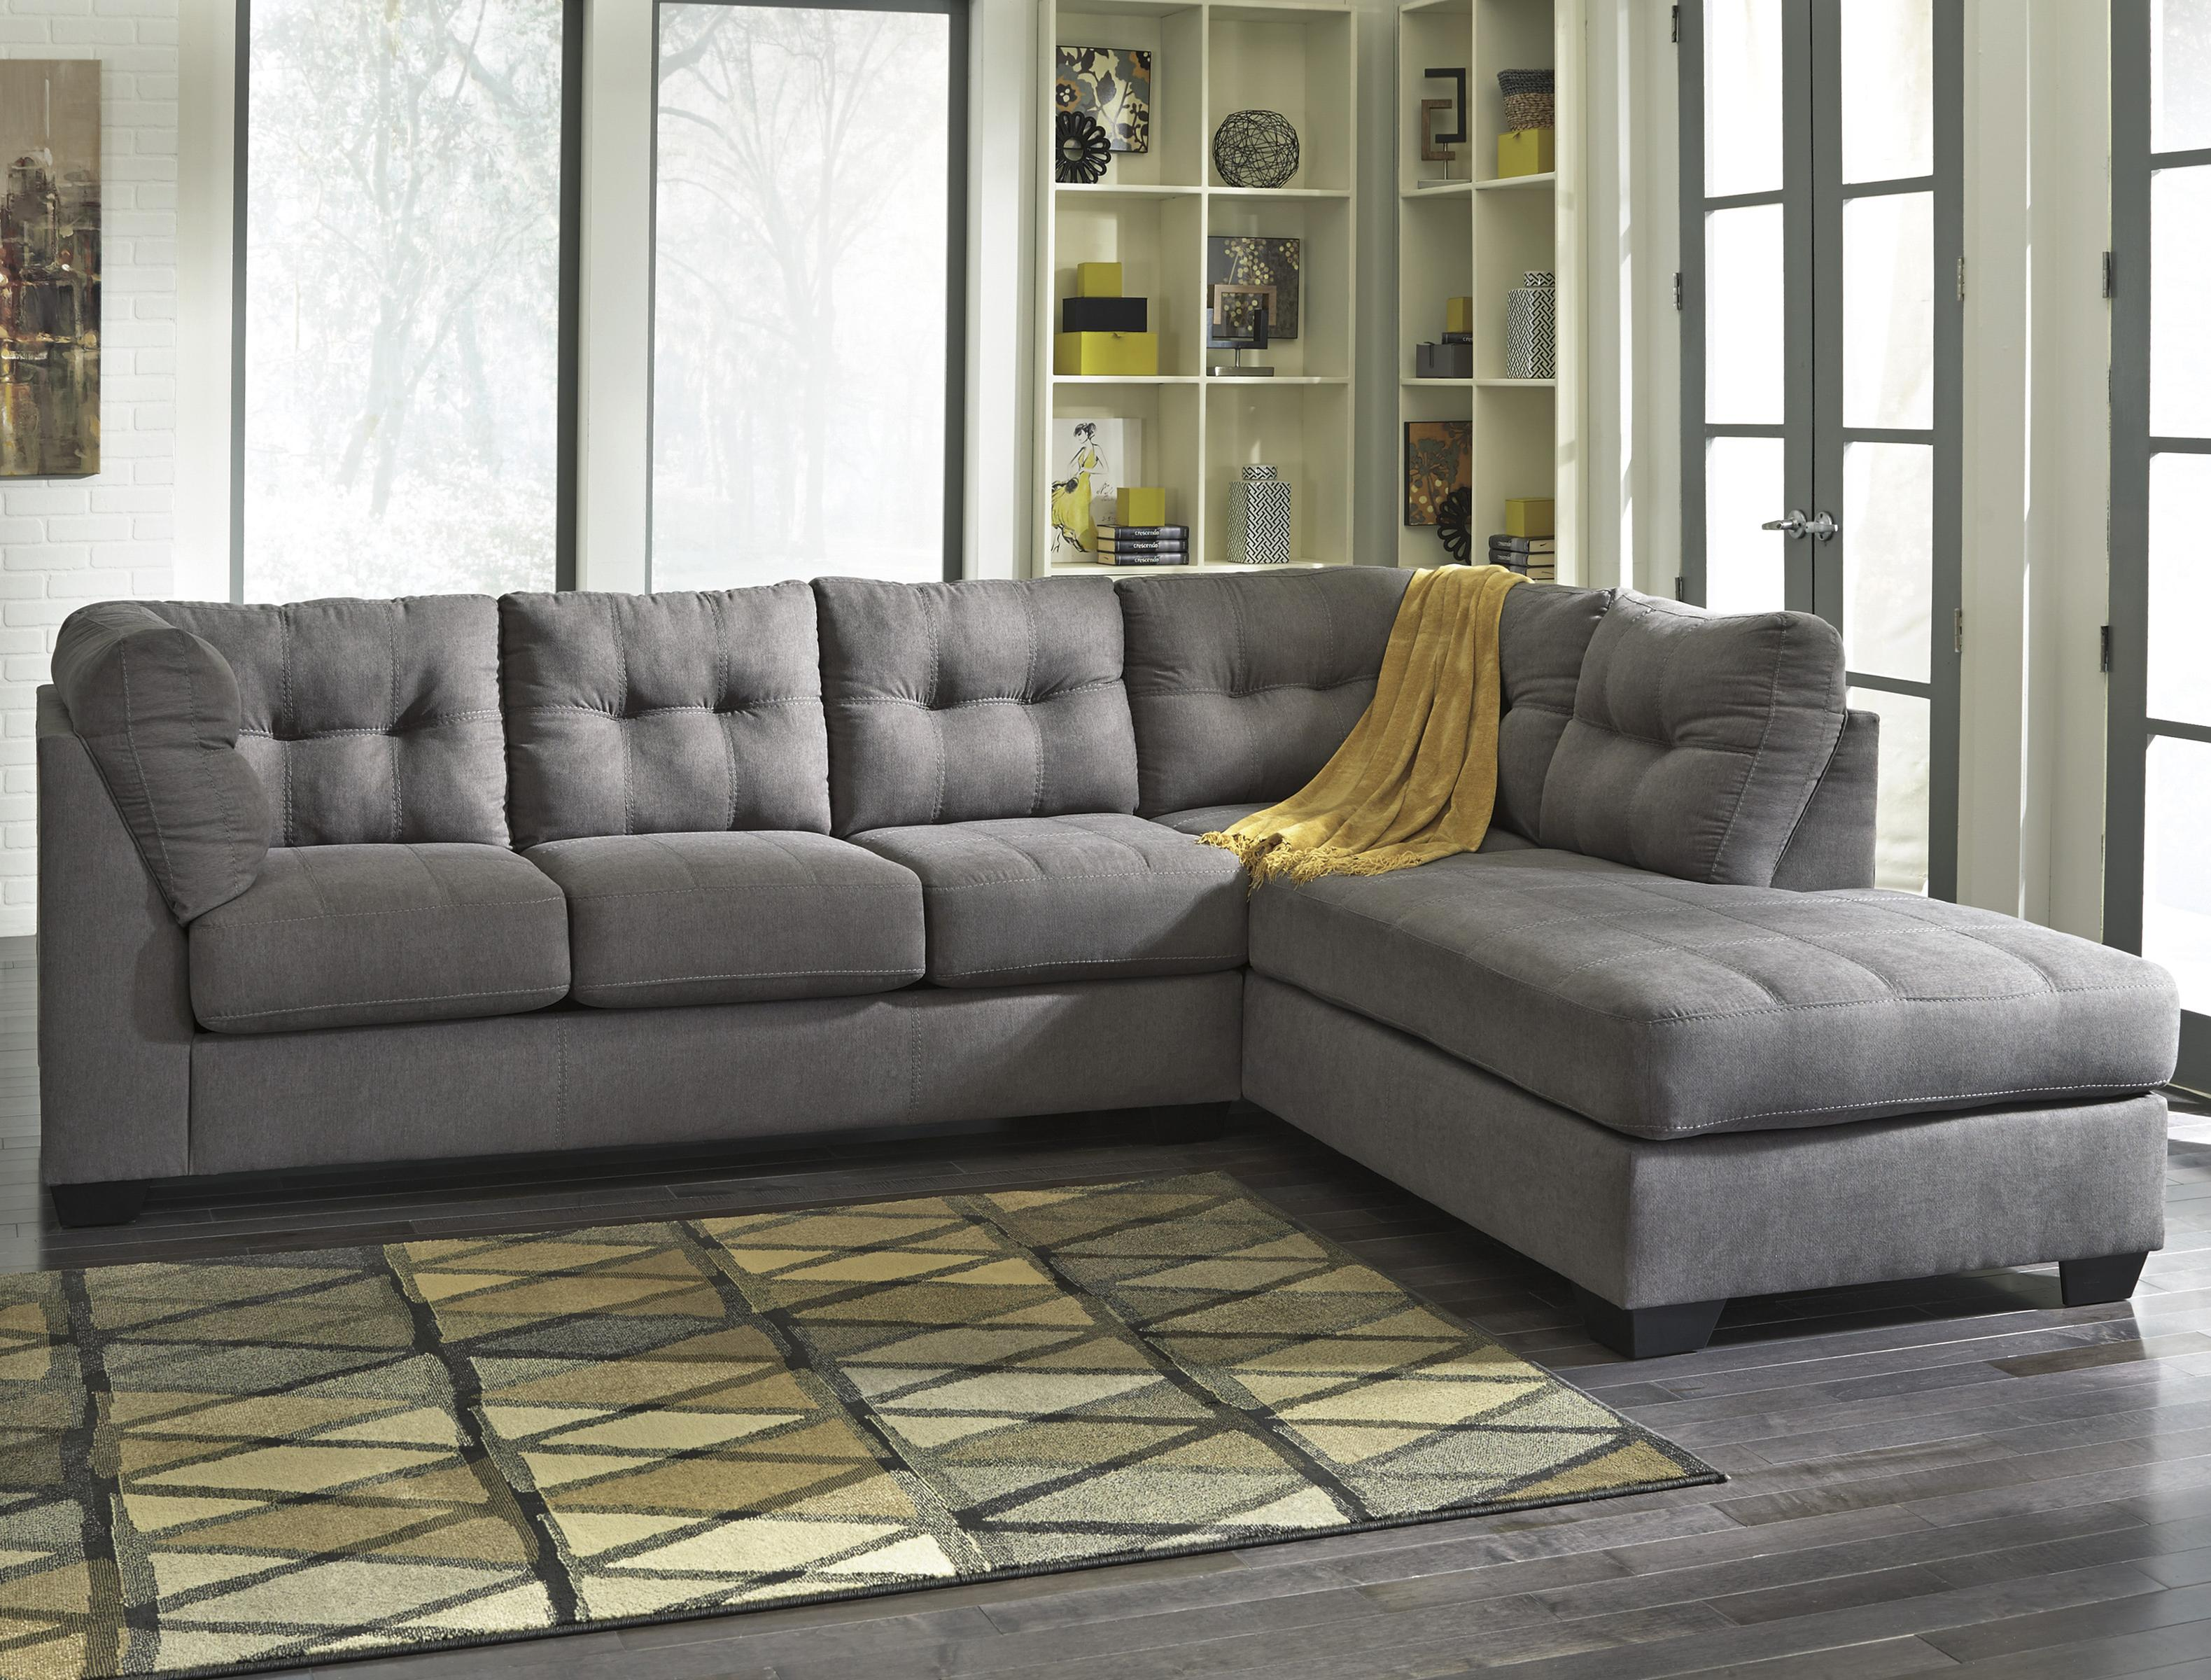 chaise decor resolution sectional house sofa sleeper impressive with applied your high small to regard